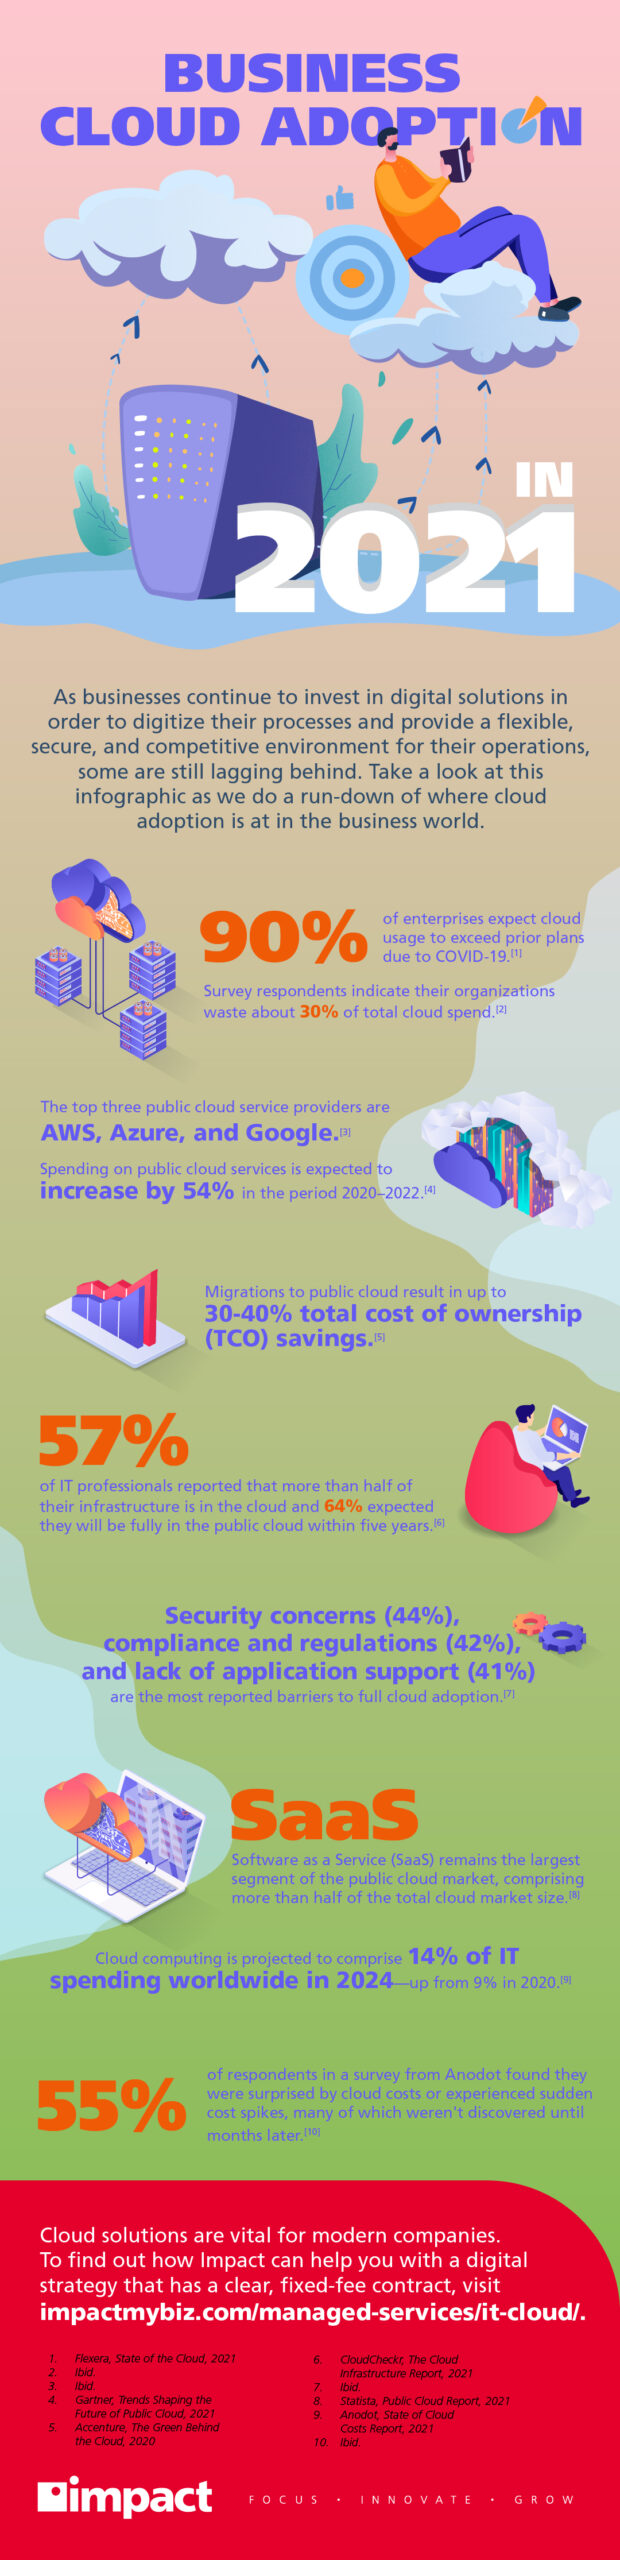 Small business cloud adoption stats in 2021